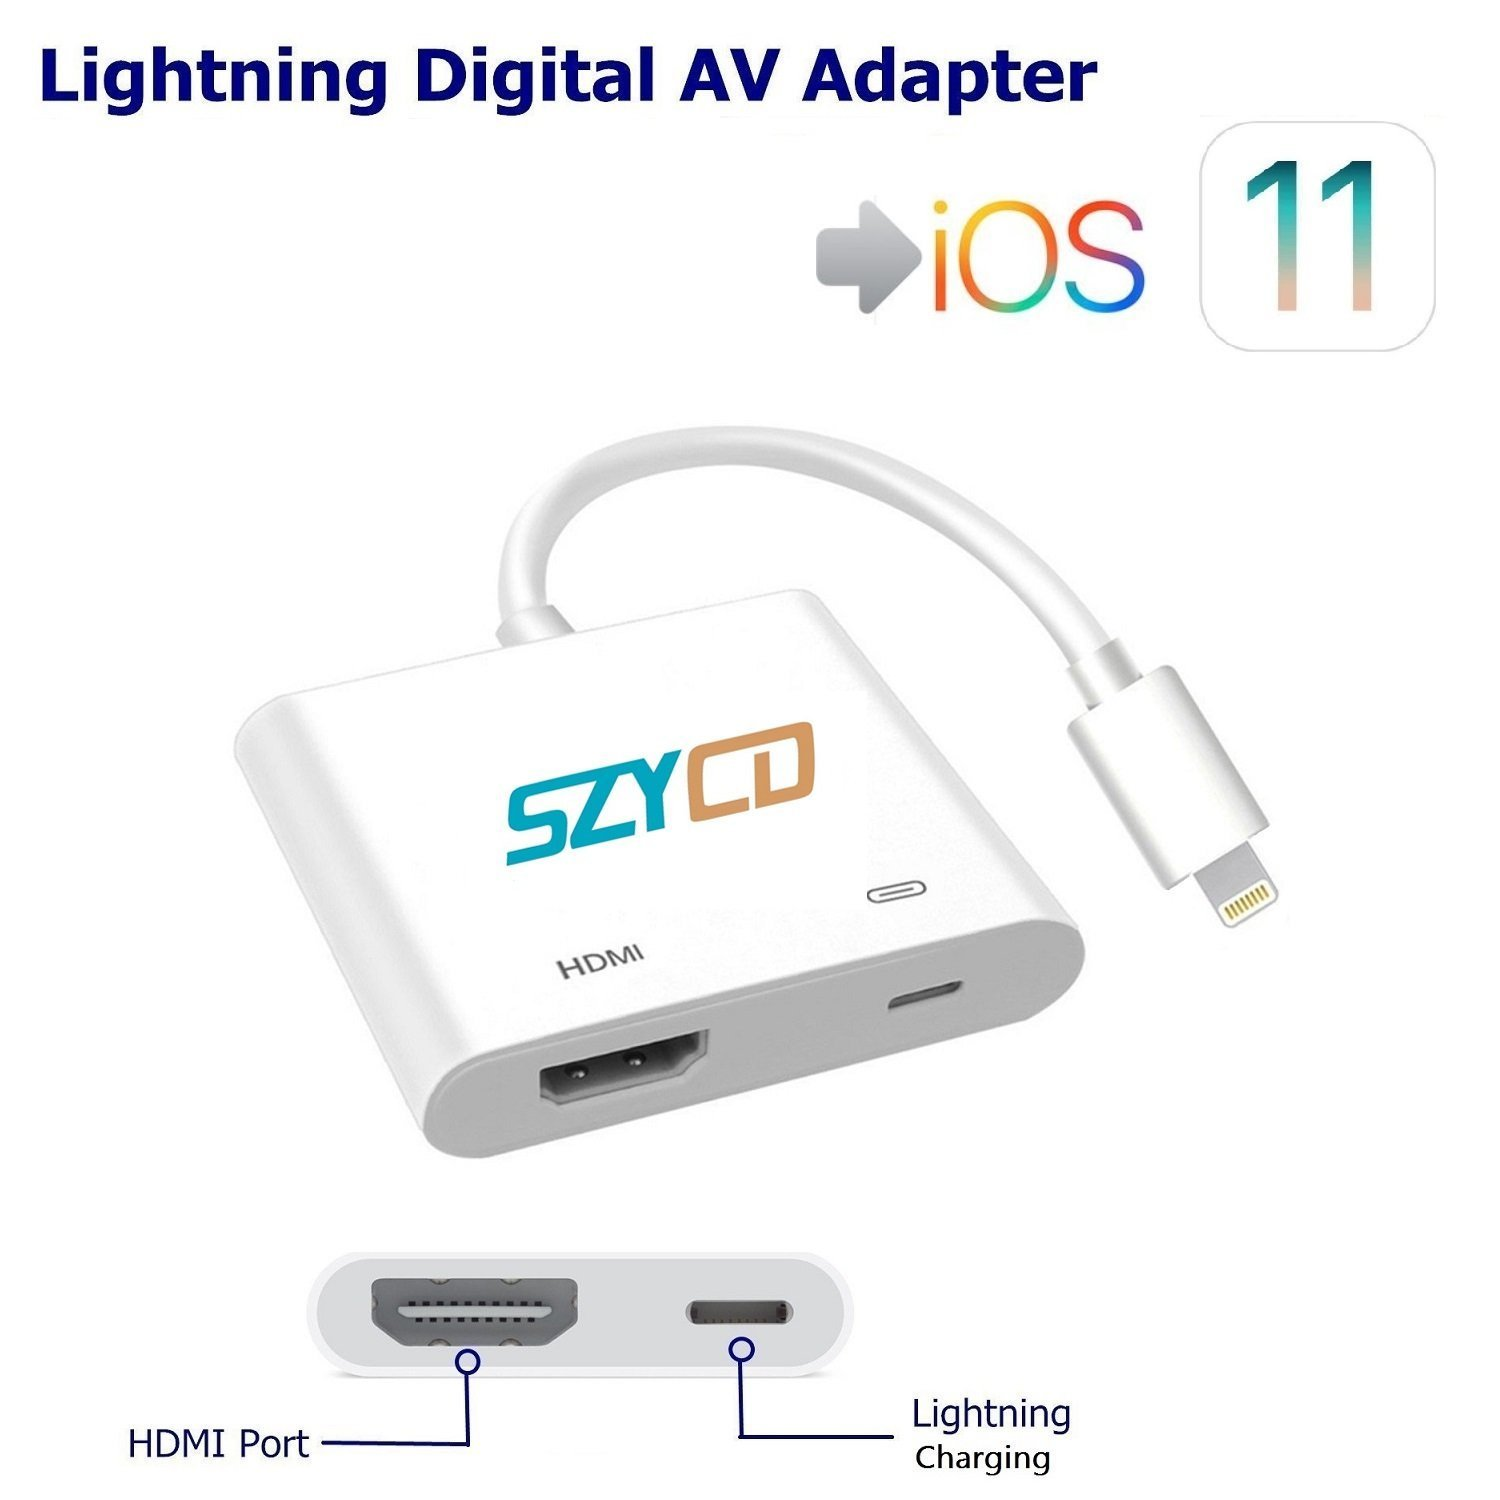 Lightning Digital AV Adapter, SZYCD iPhone iPad to HDMI Adapter with Lightning Charging Port for HD TV Monitor Projector 1080P Support iOS 9/10/11 by SZYCD